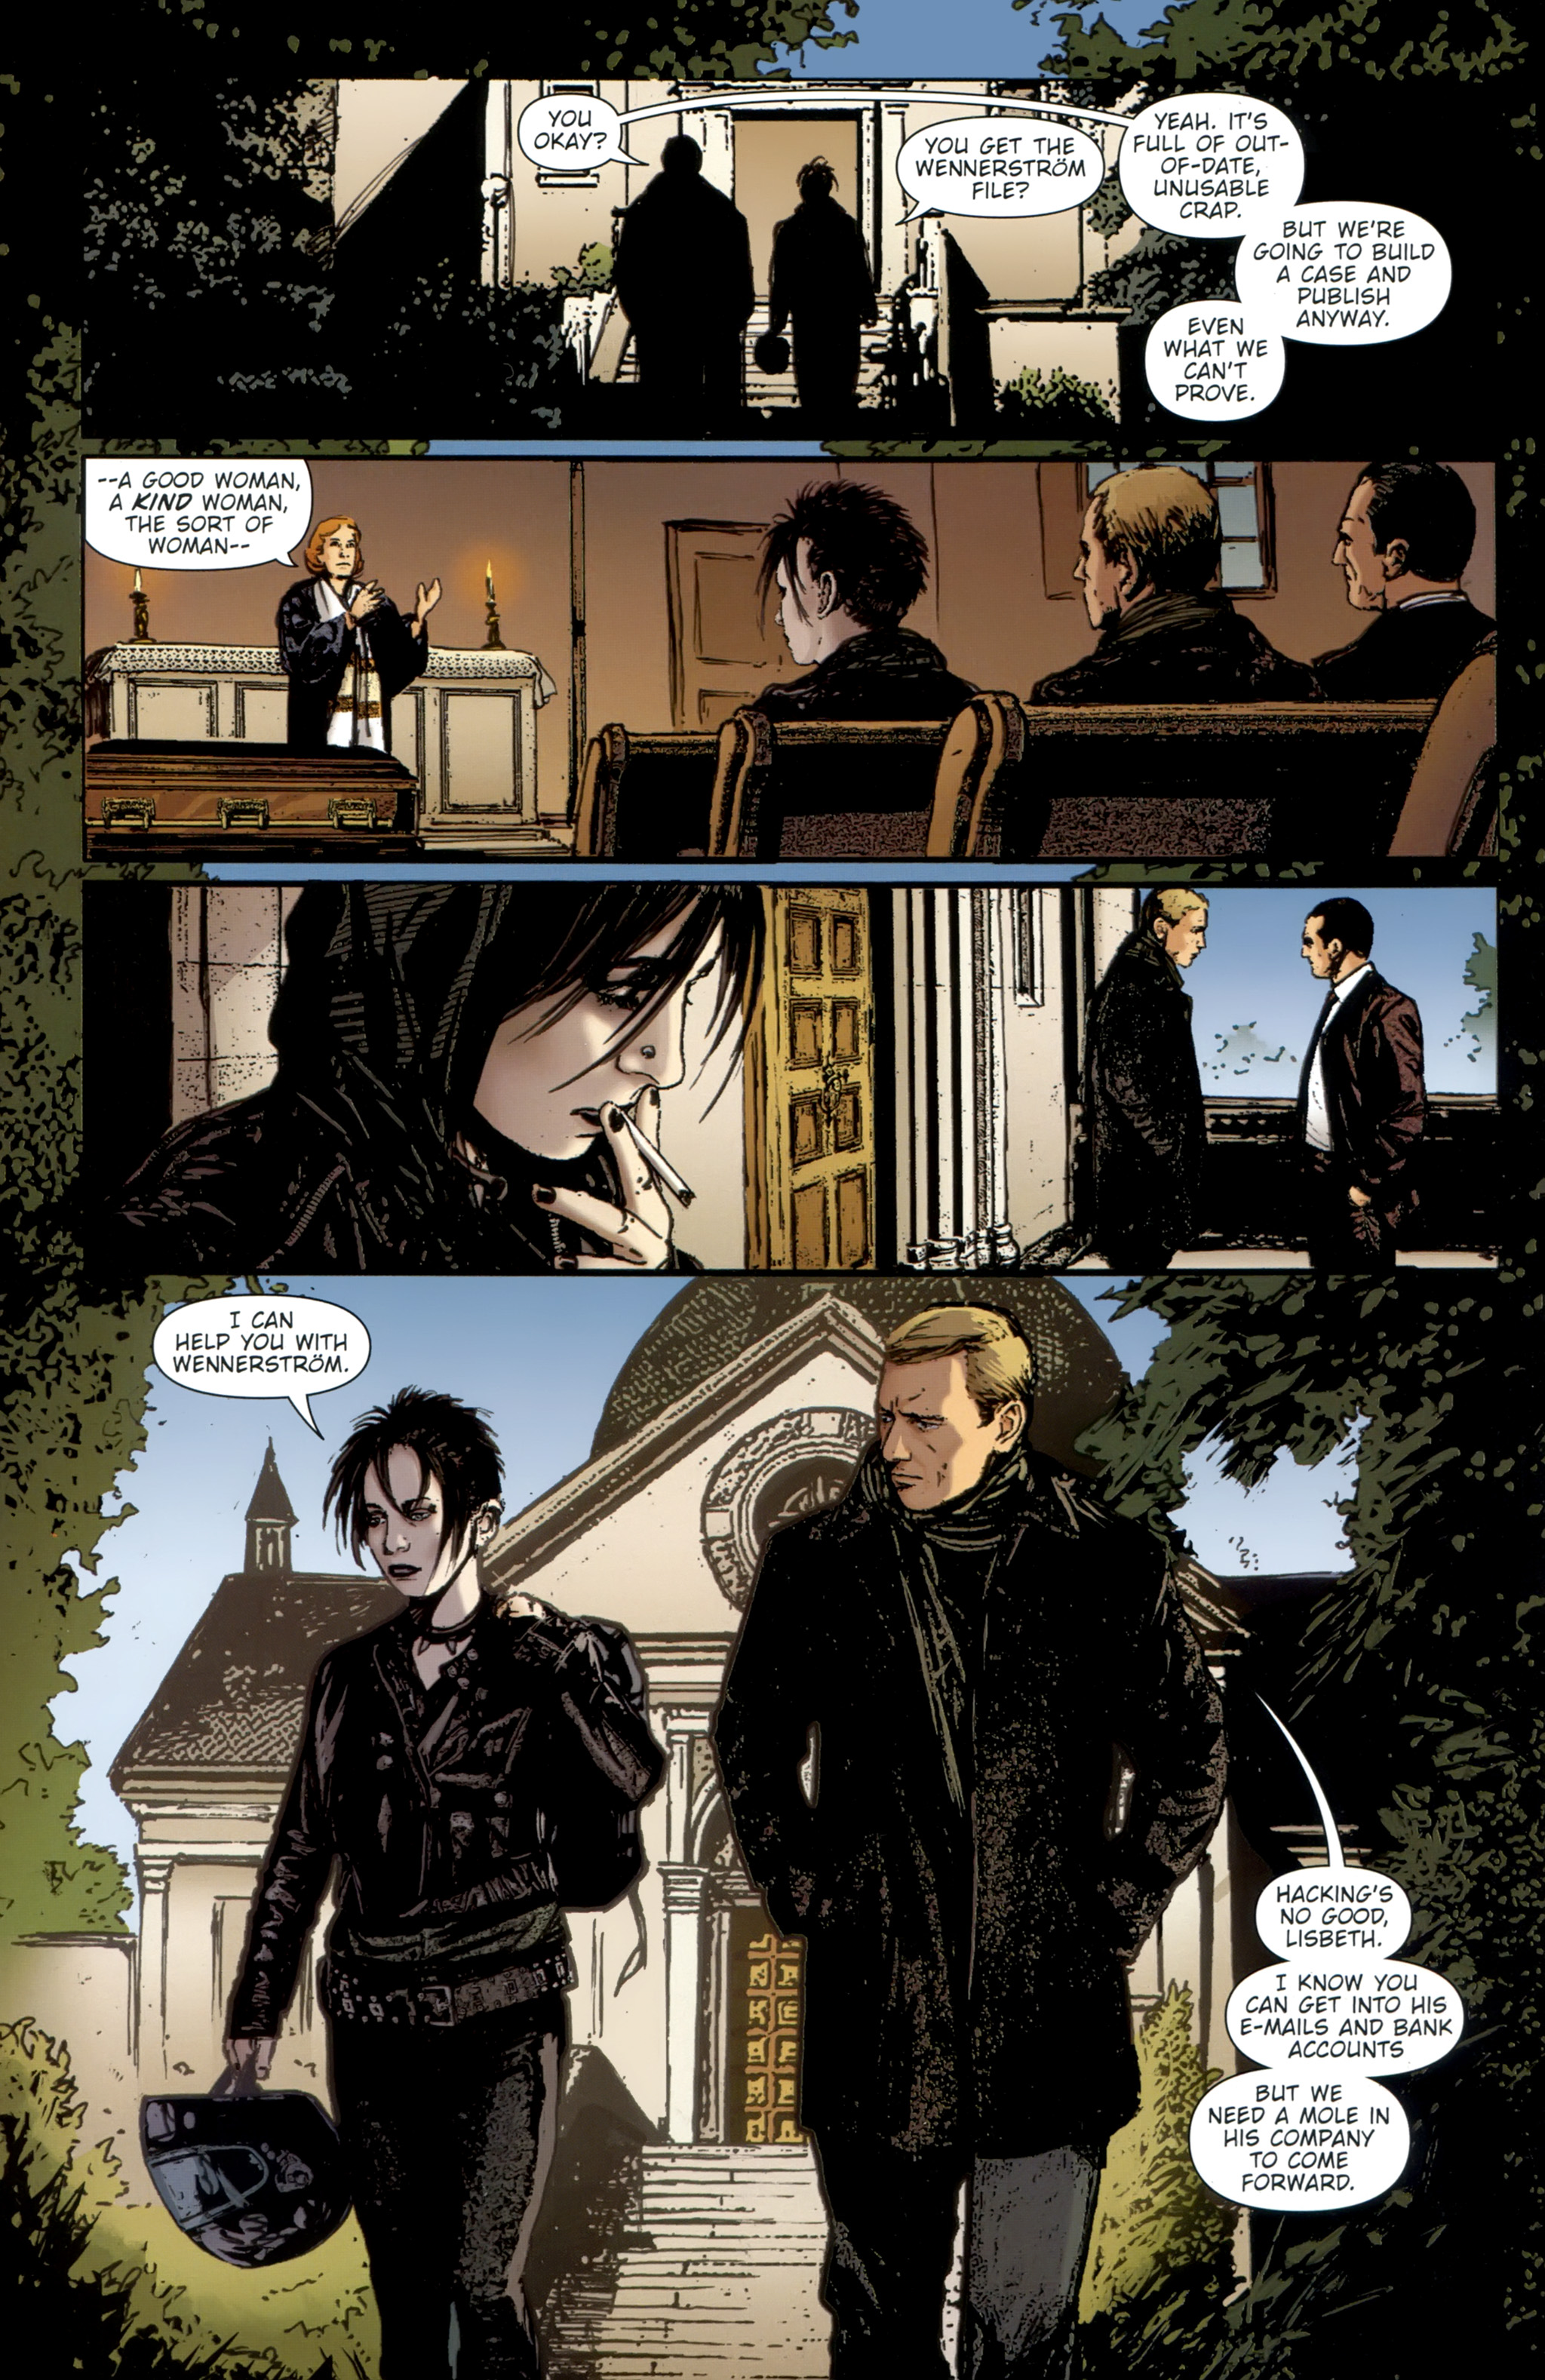 Read online The Girl With the Dragon Tattoo comic -  Issue # TPB 2 - 144